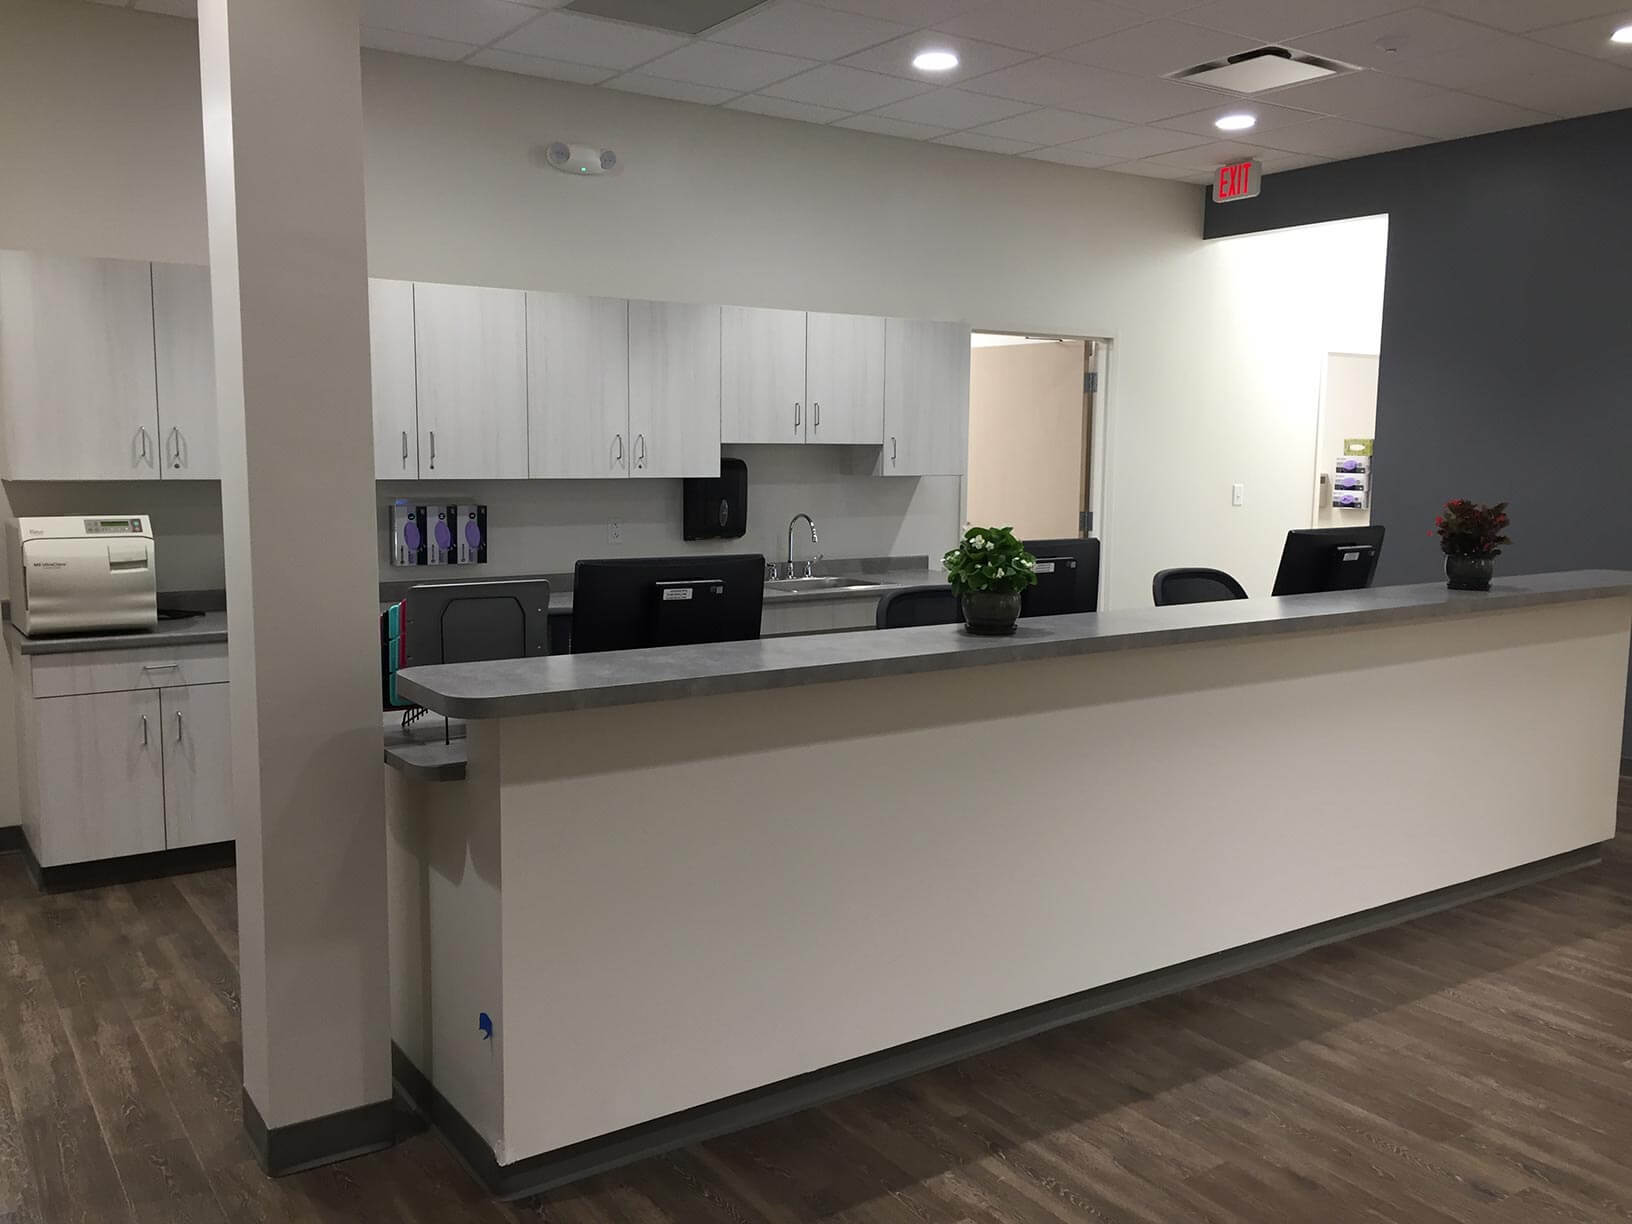 Velocity Urgent Care - Wards Corner, Norfolk Va.